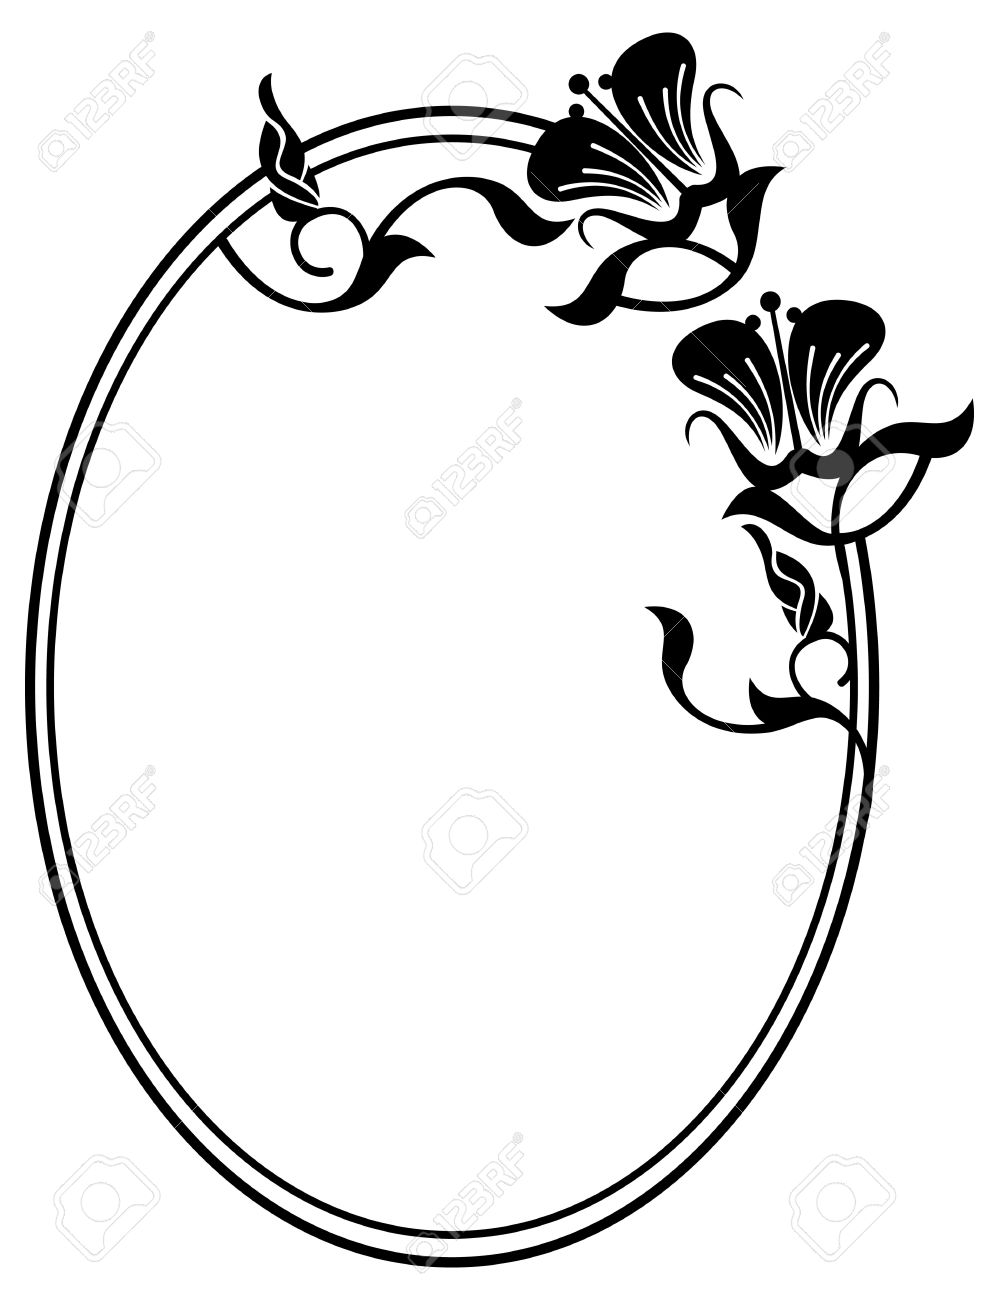 beautiful silhouette frame simple black and white oval frame rh 123rf com beautiful clip art images beautiful clipart graphics